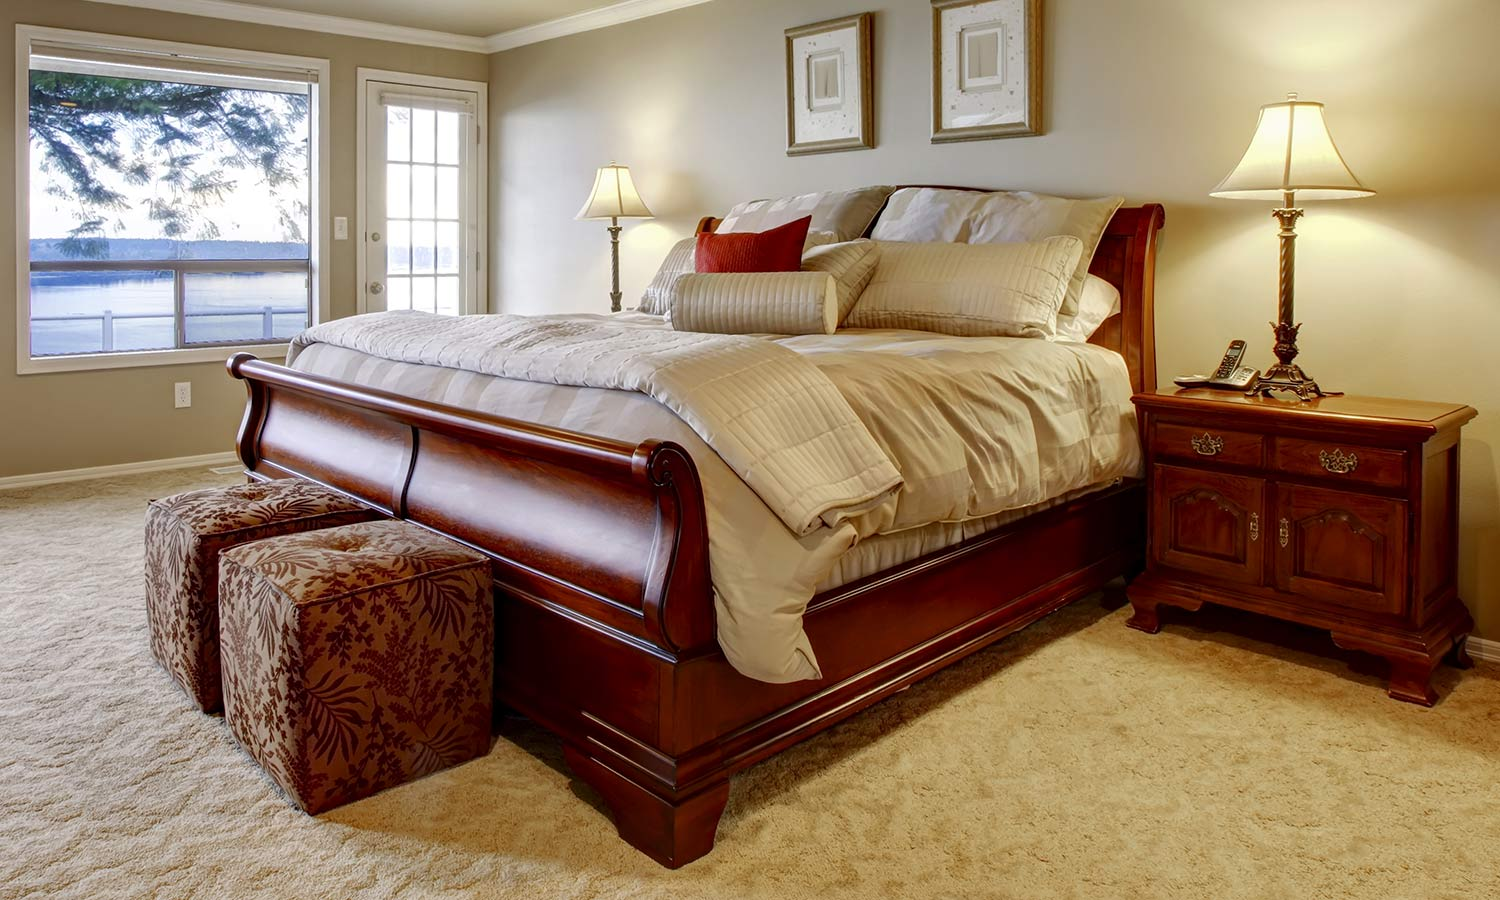 A traditional sleigh-style framed bed, with curving wood at the foot and head.